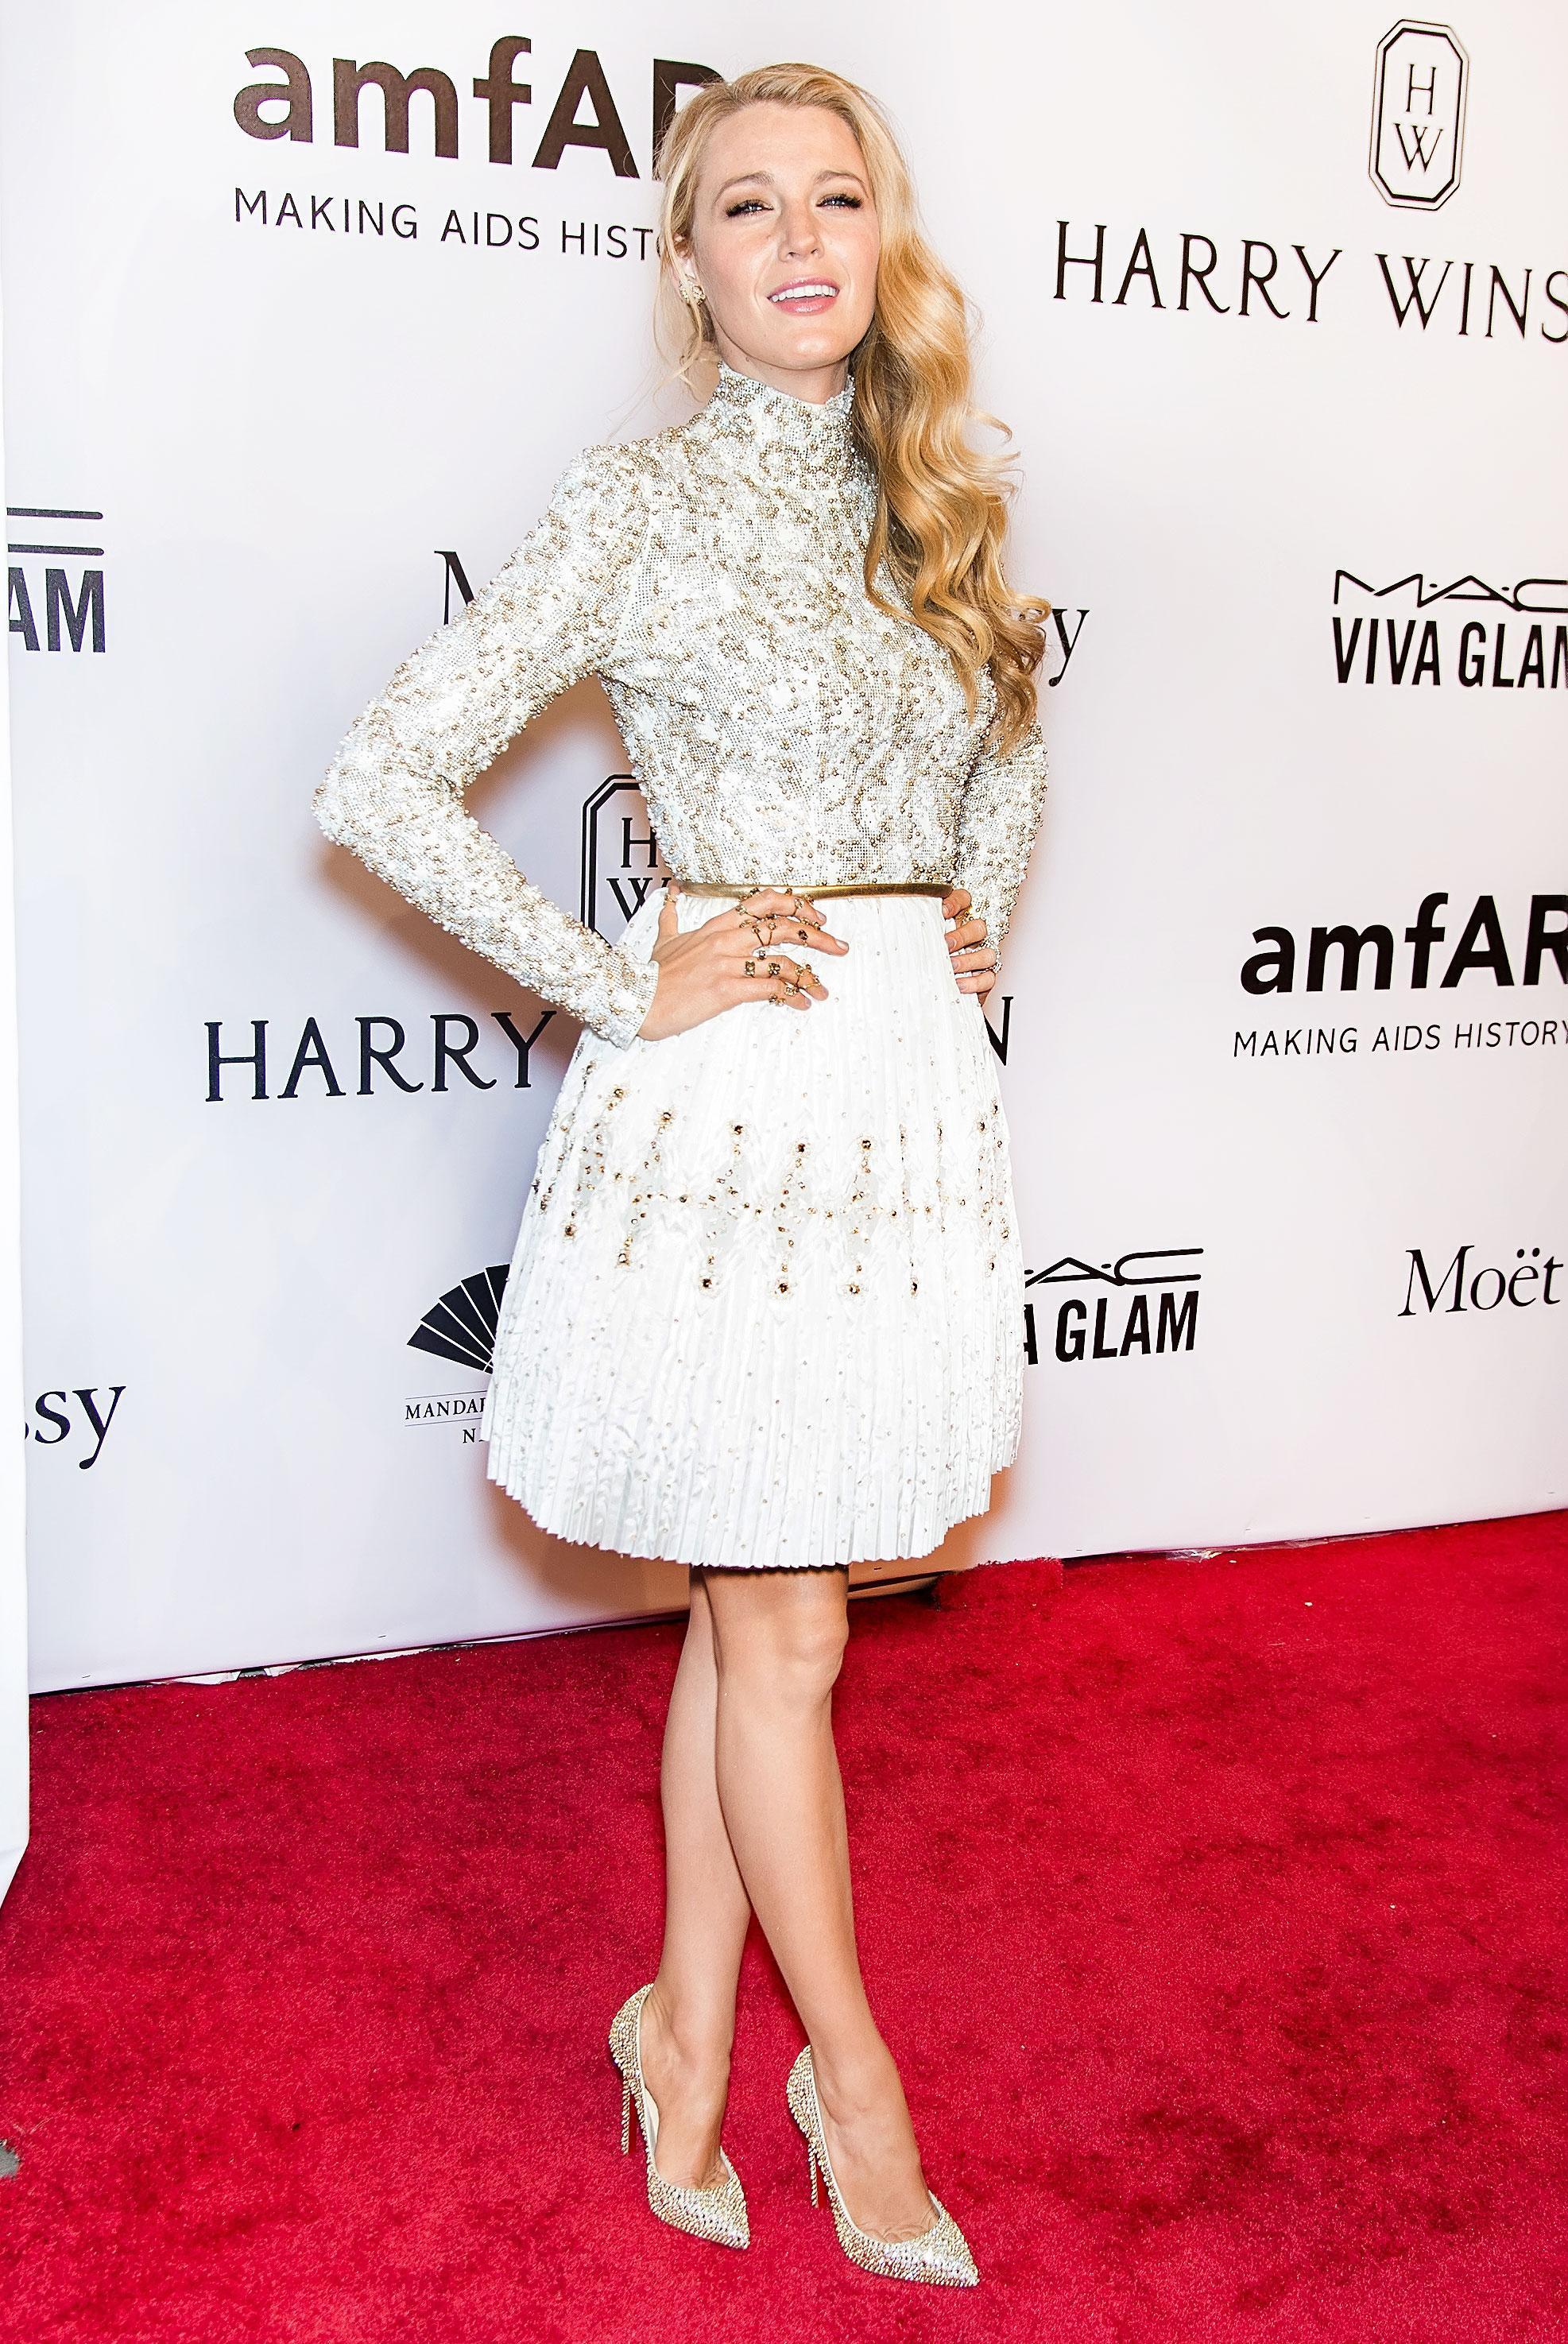 Blake Lively's Golden Shoes Upstage Her Embellished Dress